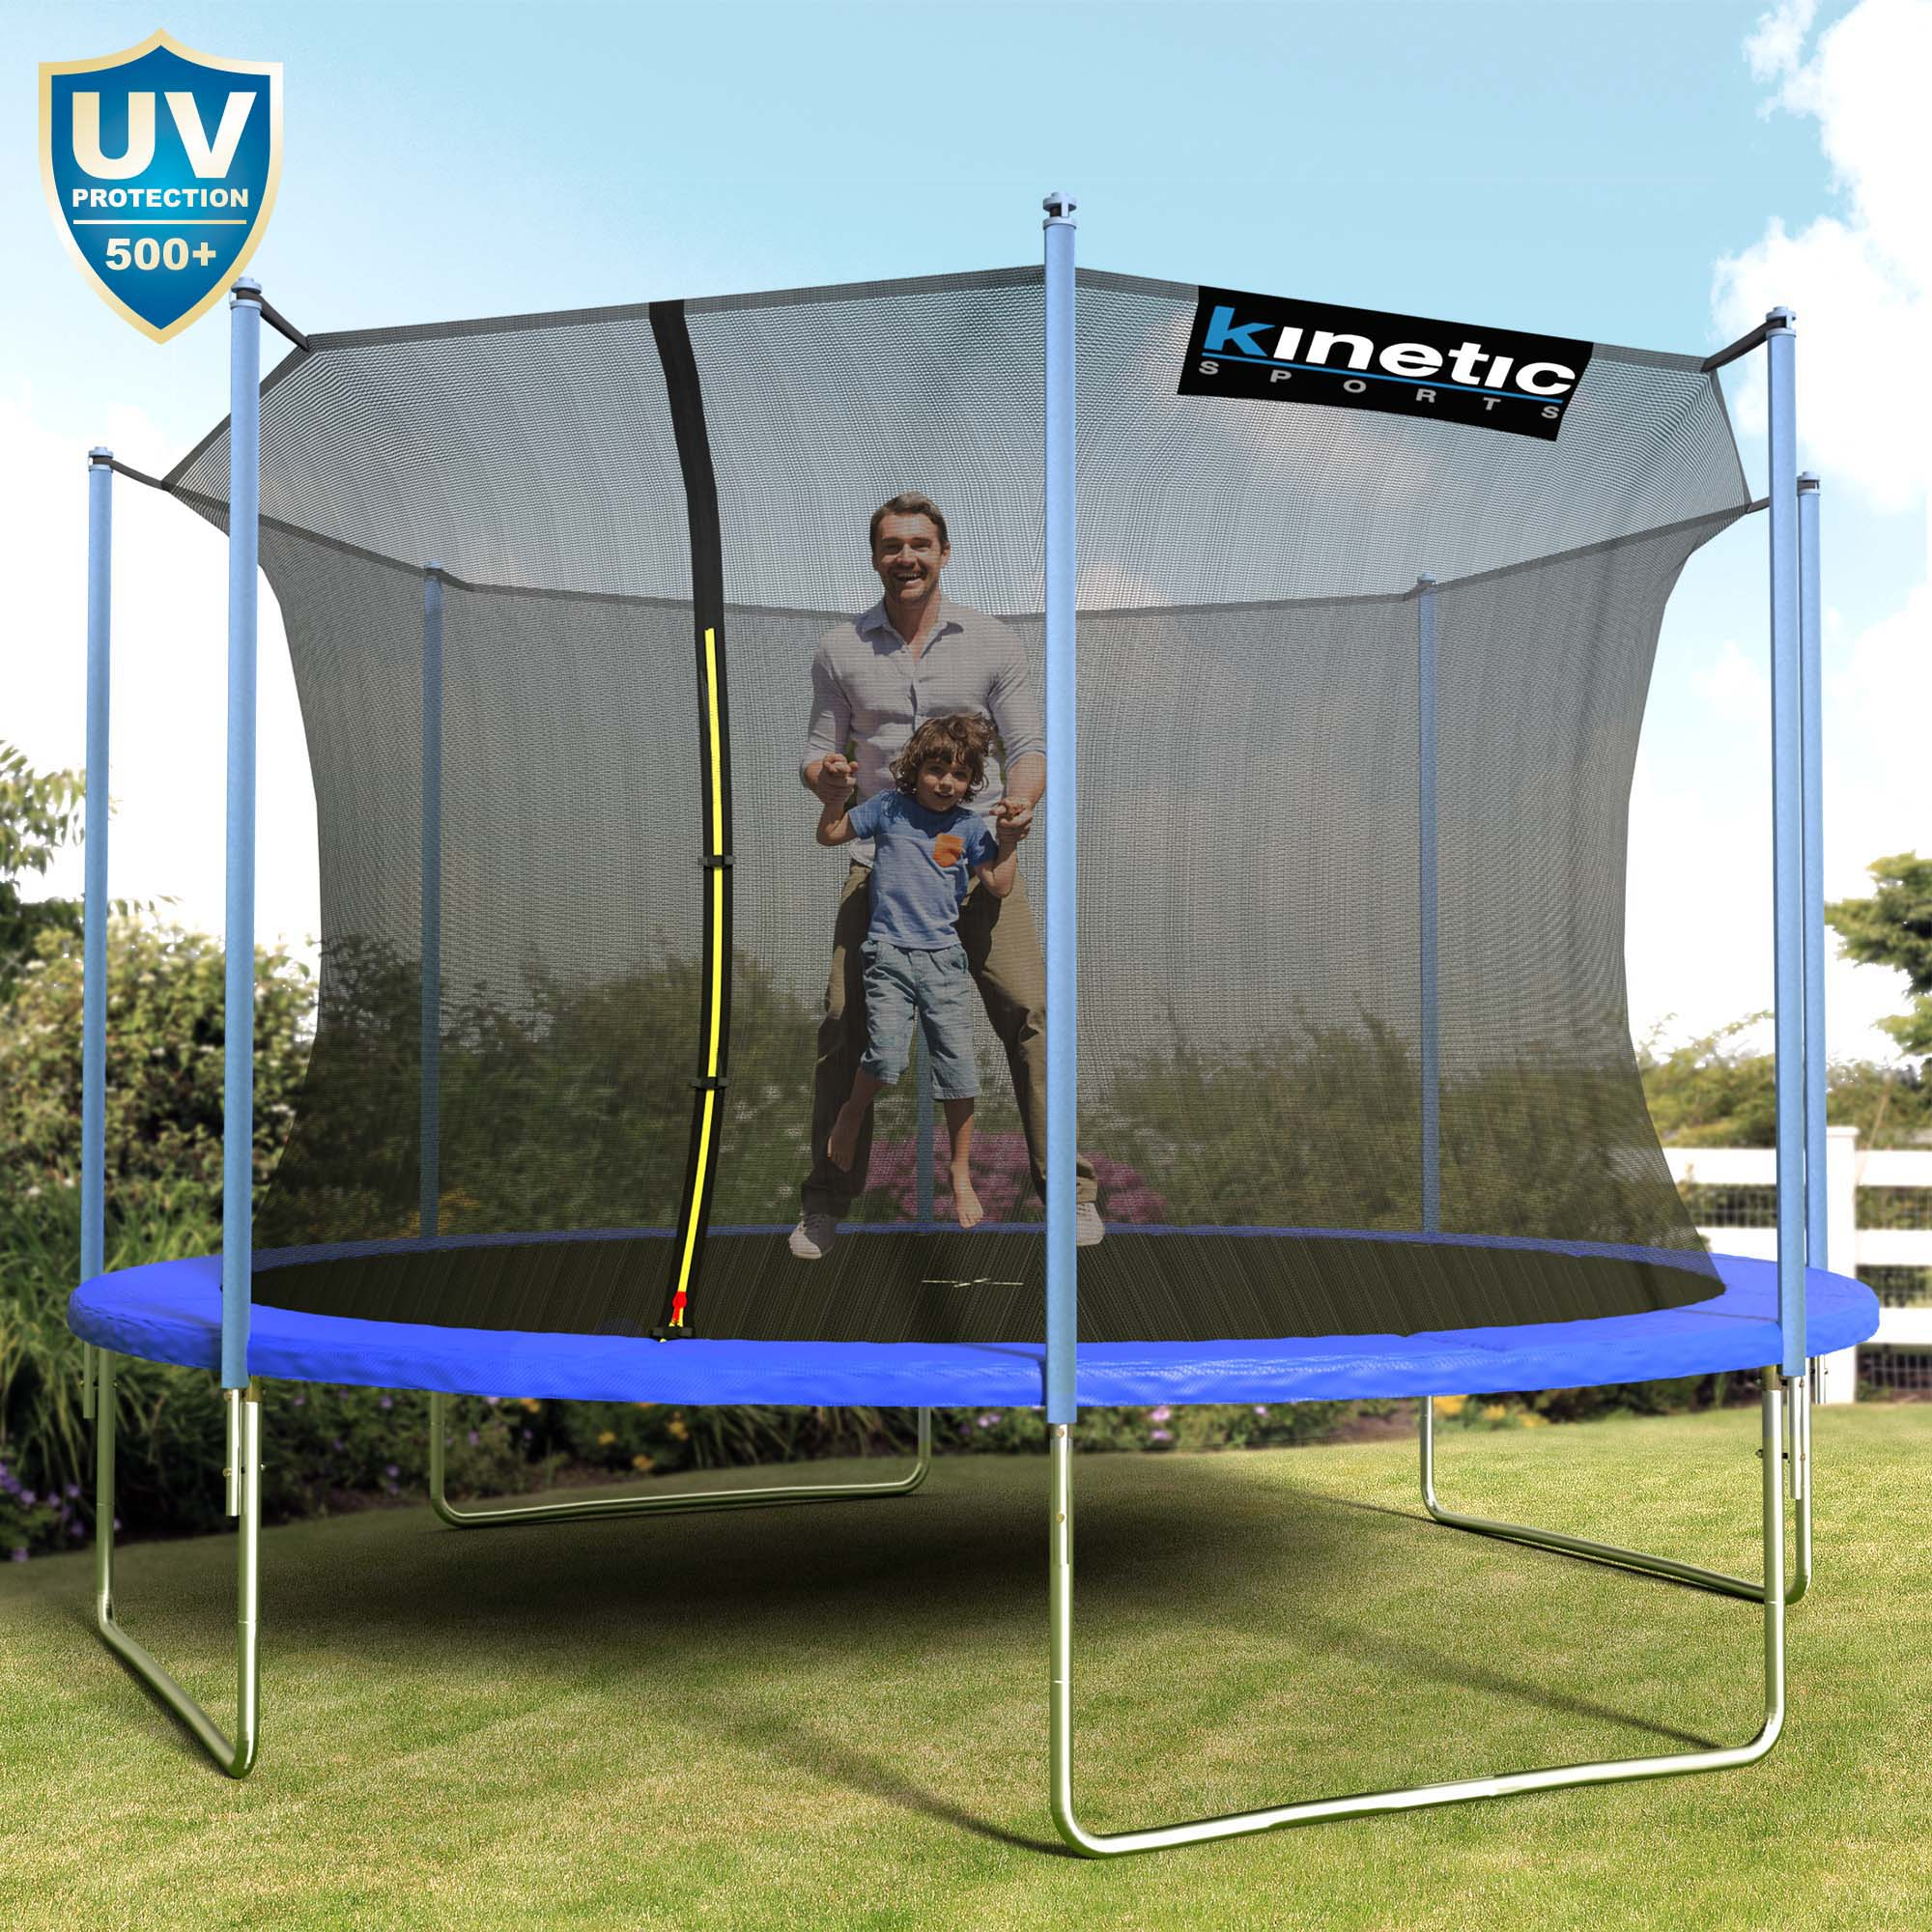 trampolin set gartentrampolin outdoor mit sicherheitsnetz randabdeckung ebay. Black Bedroom Furniture Sets. Home Design Ideas